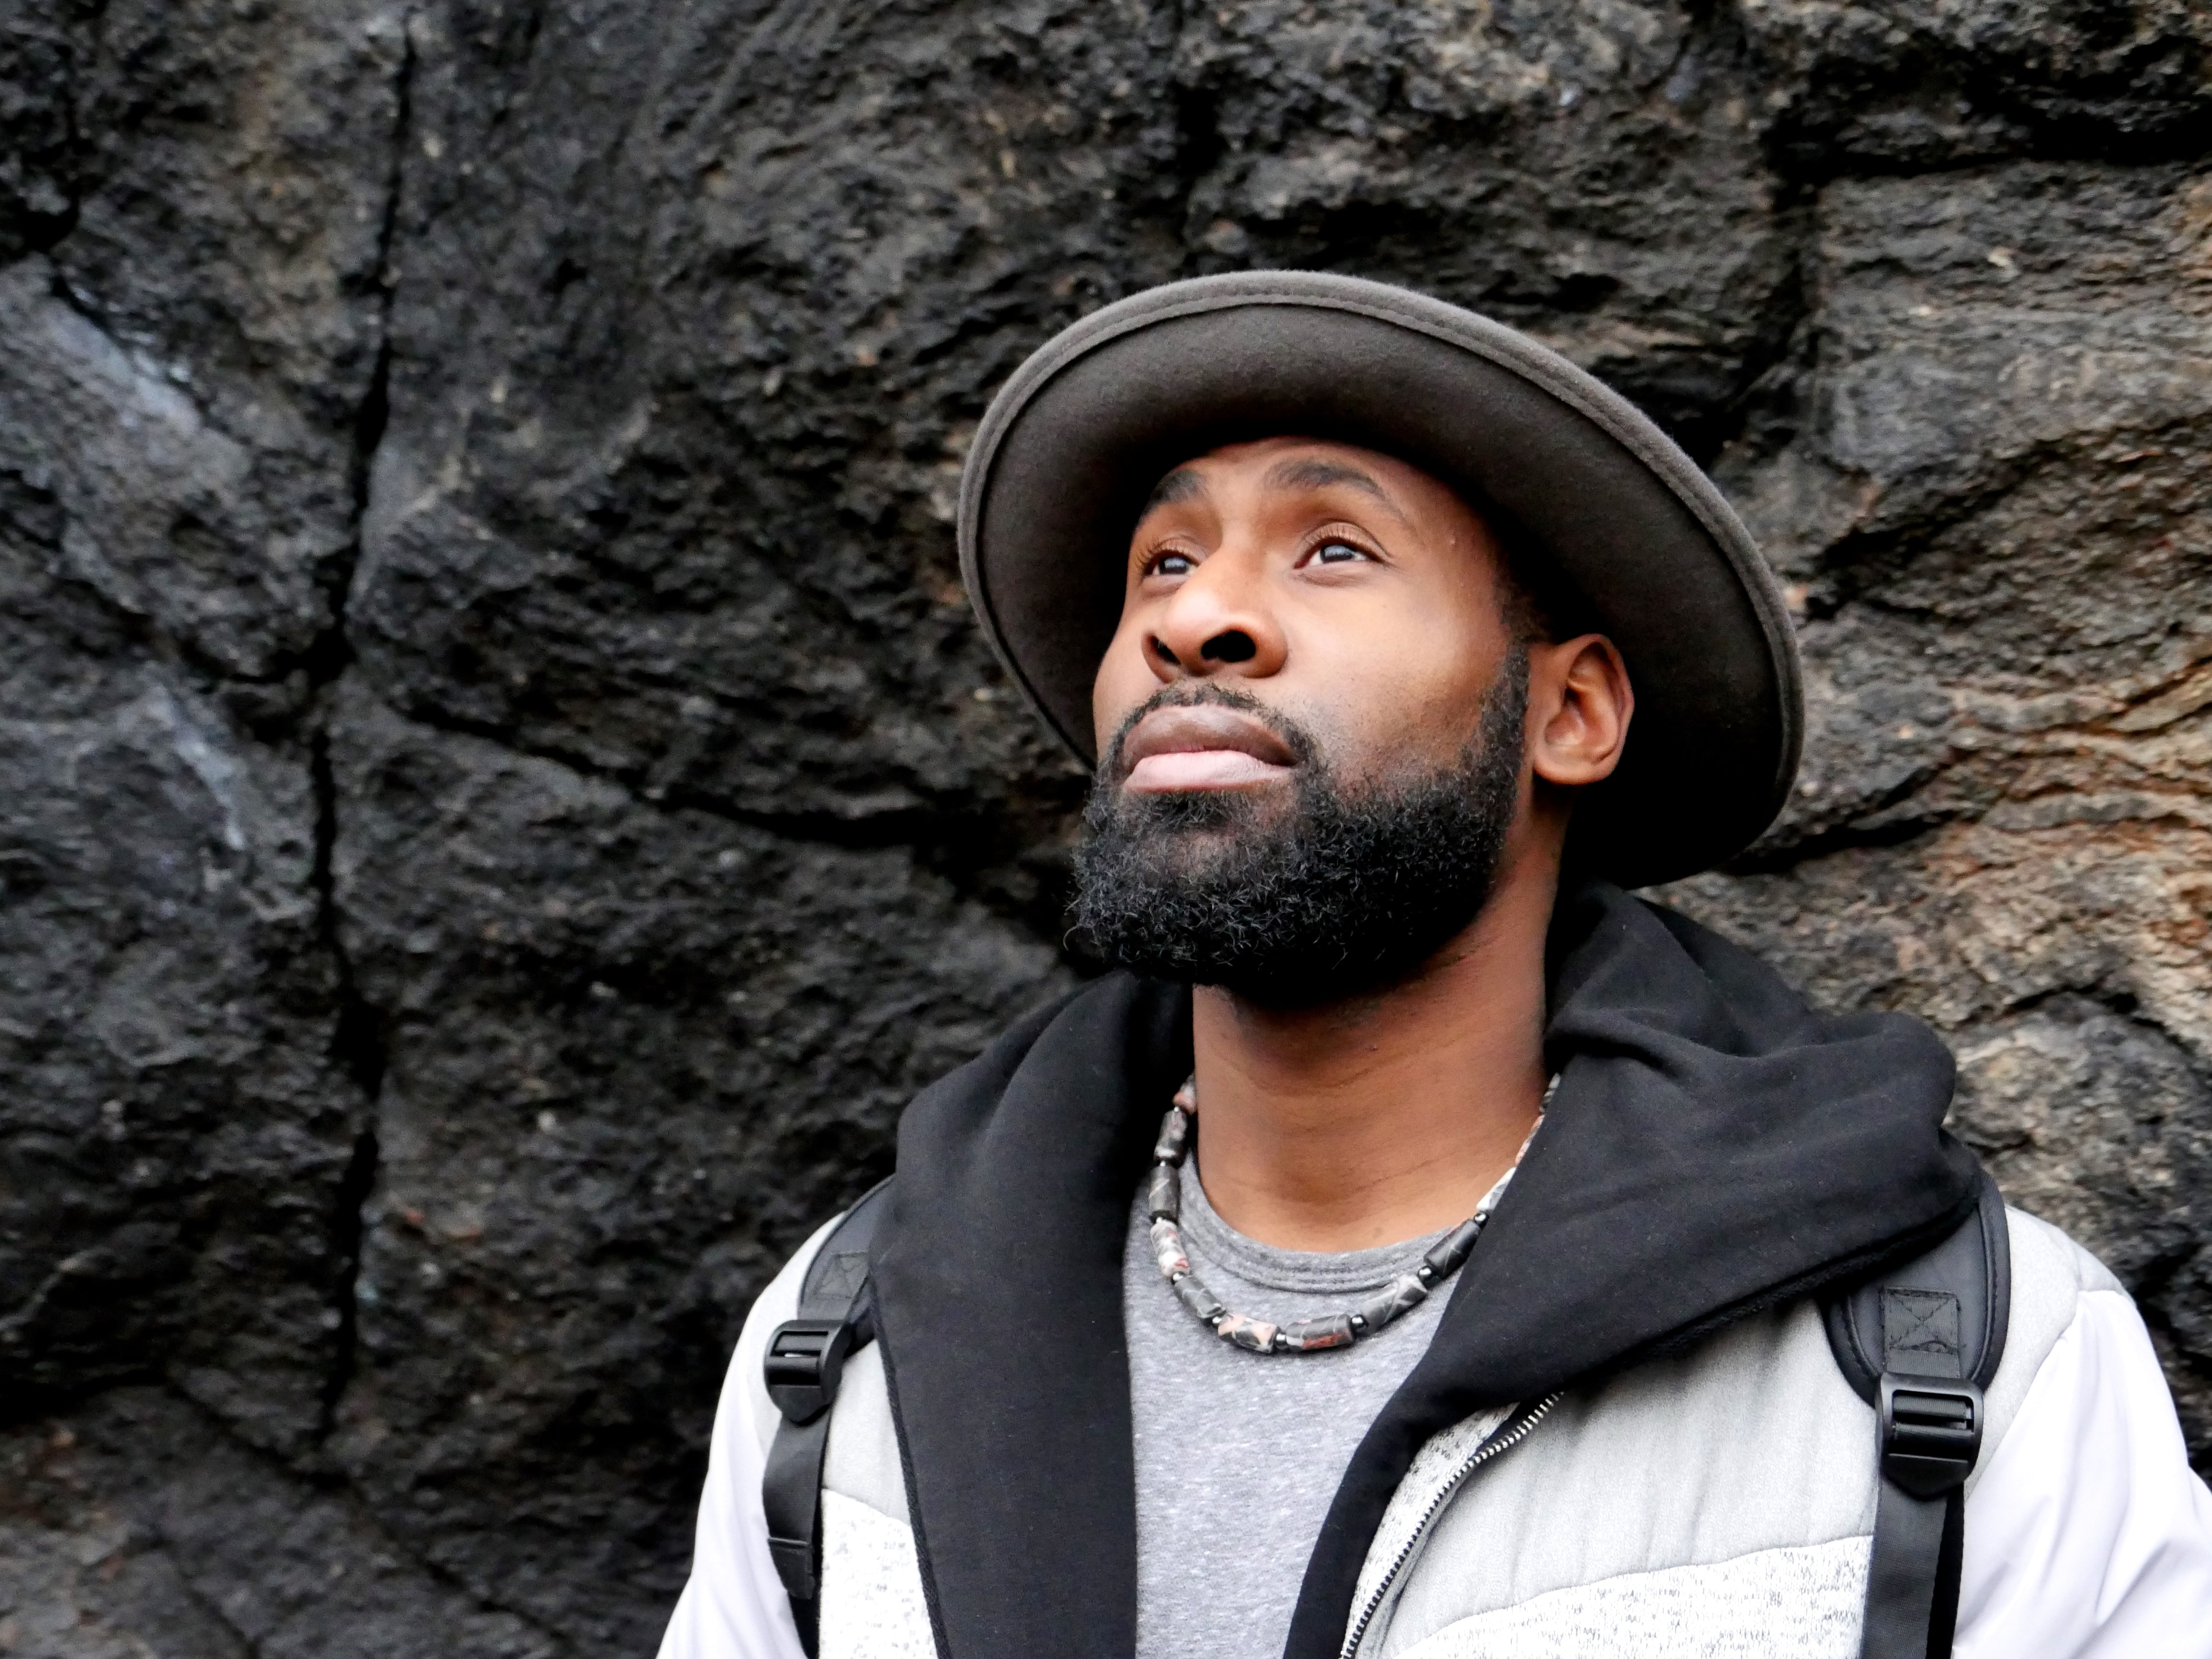 A bearded man in a brimmed hat and backpack looks upward before a rocky wall